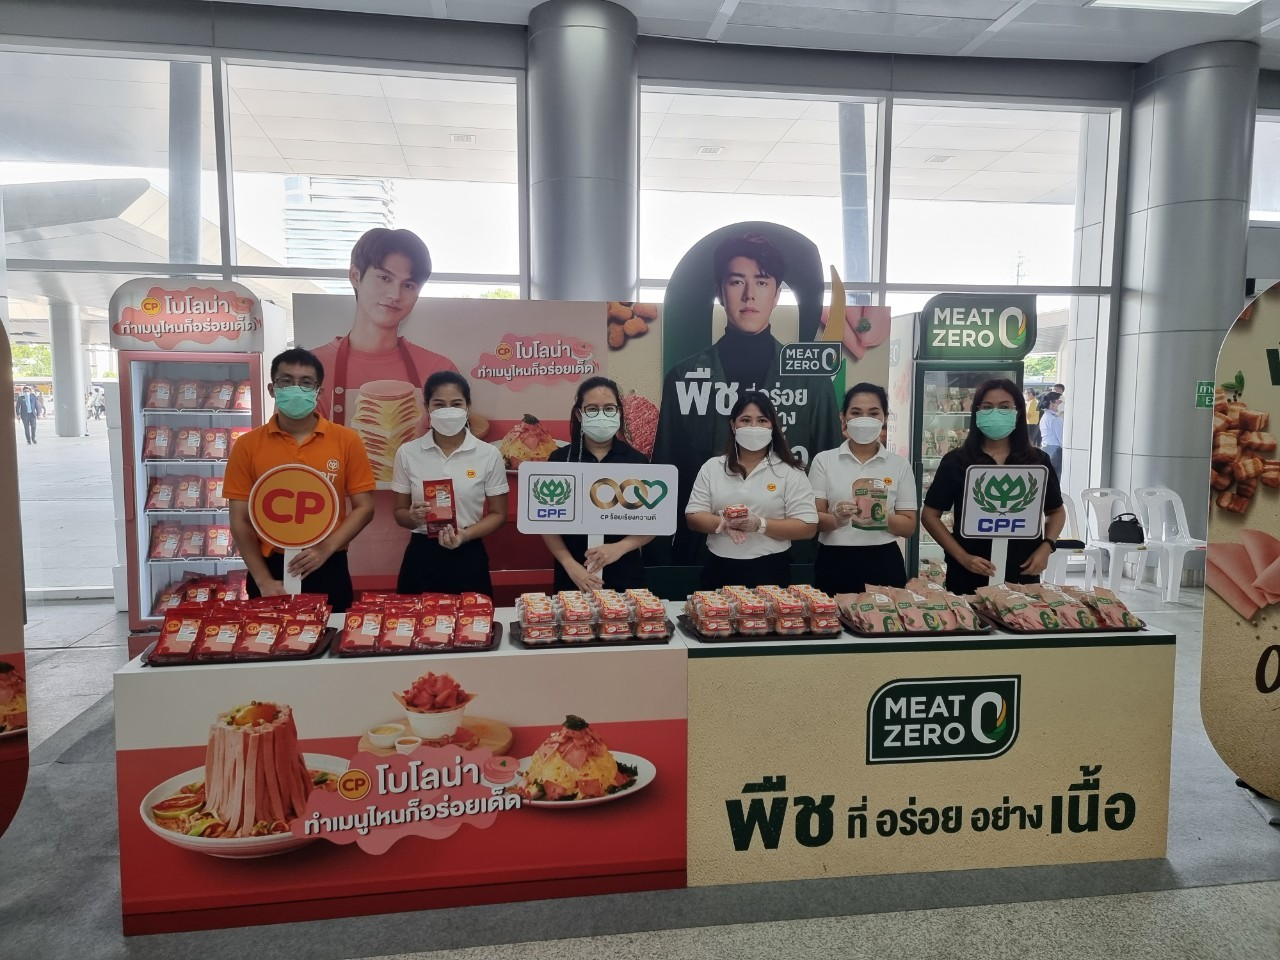 CP Foods urges people to get vaccinated and supports the drive for herd immunity